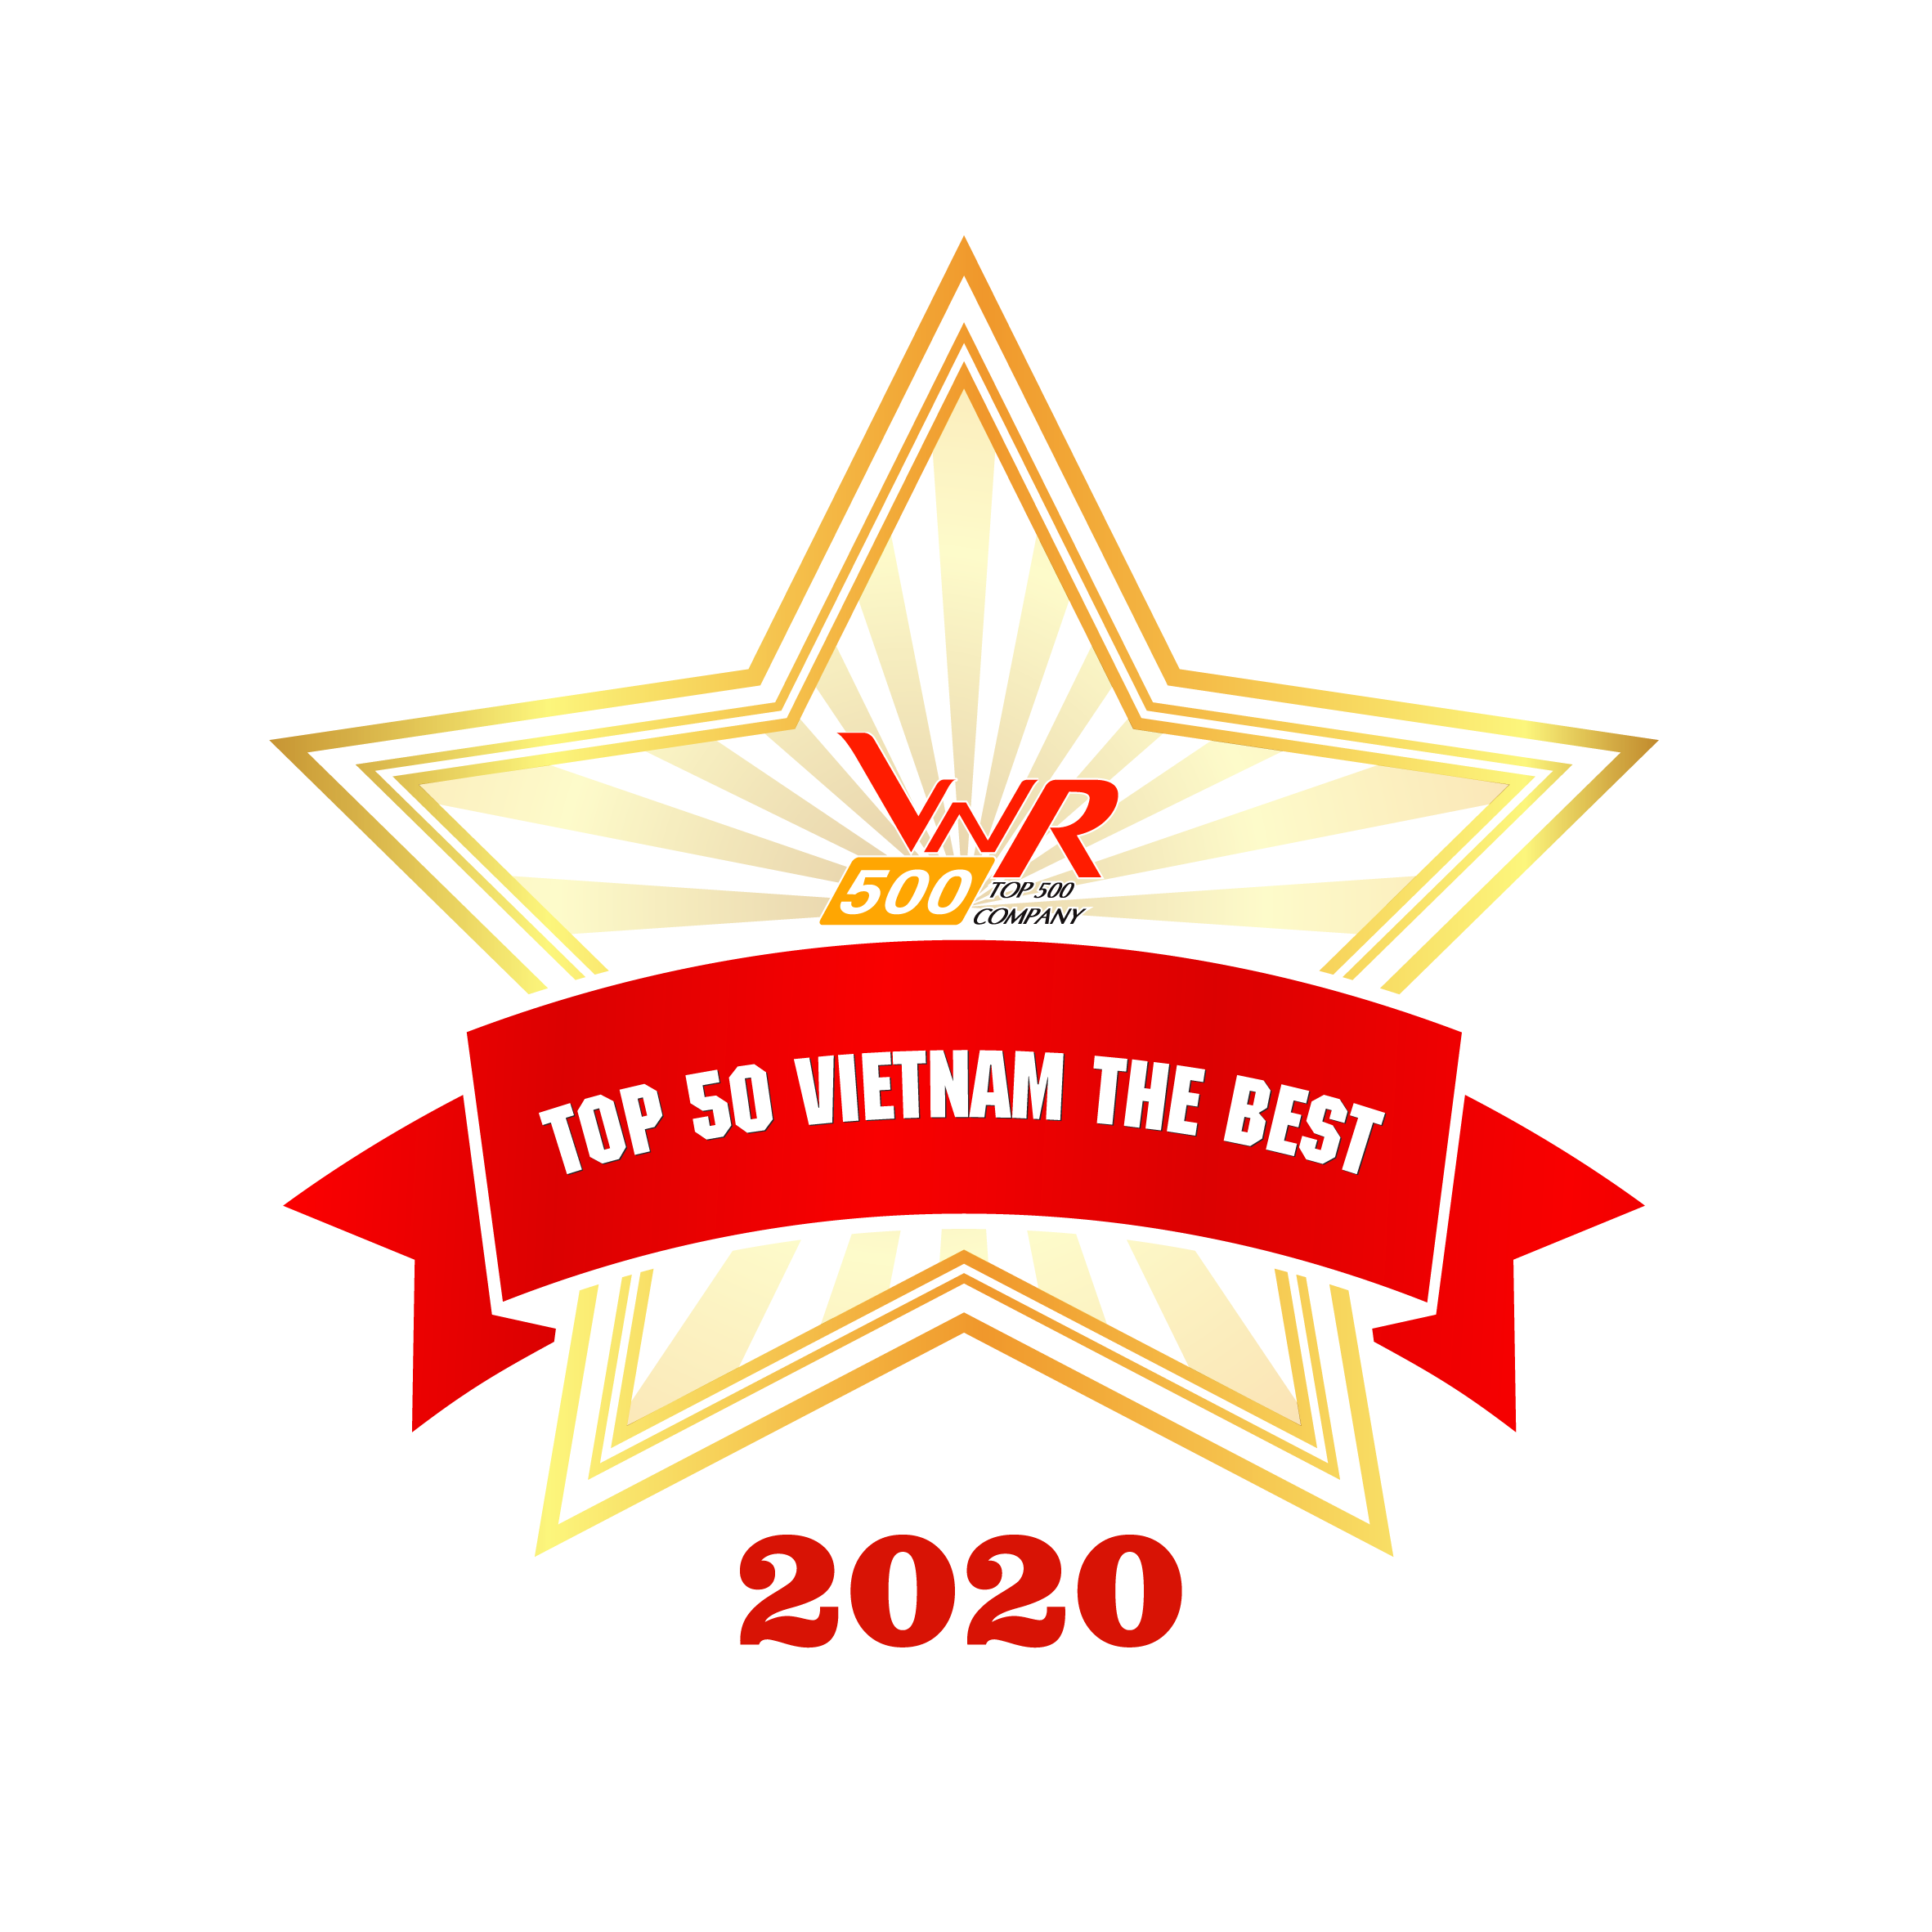 Top 50 Vietnam The Best 2020